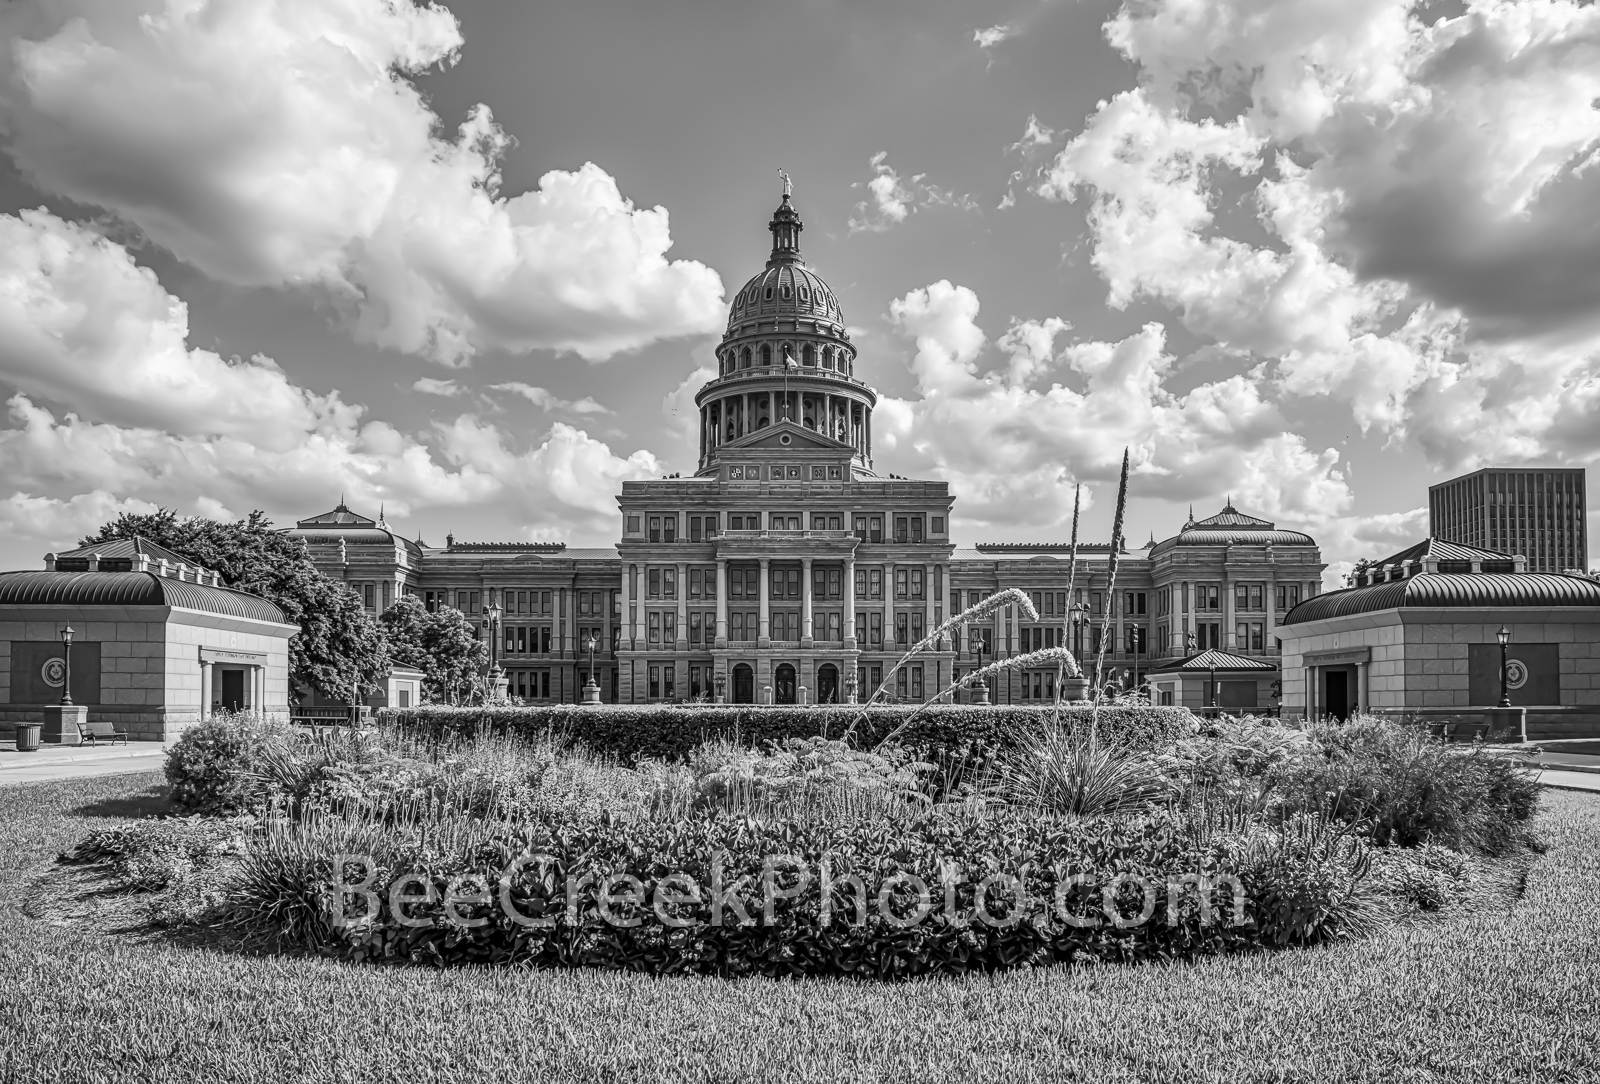 capitol of texas, bw, black and white, texas state capitol, austin, photos,images, austin texas, images of austin, texas capitol images, images of texas, images of texas capitol, photos of texas, phot, photo